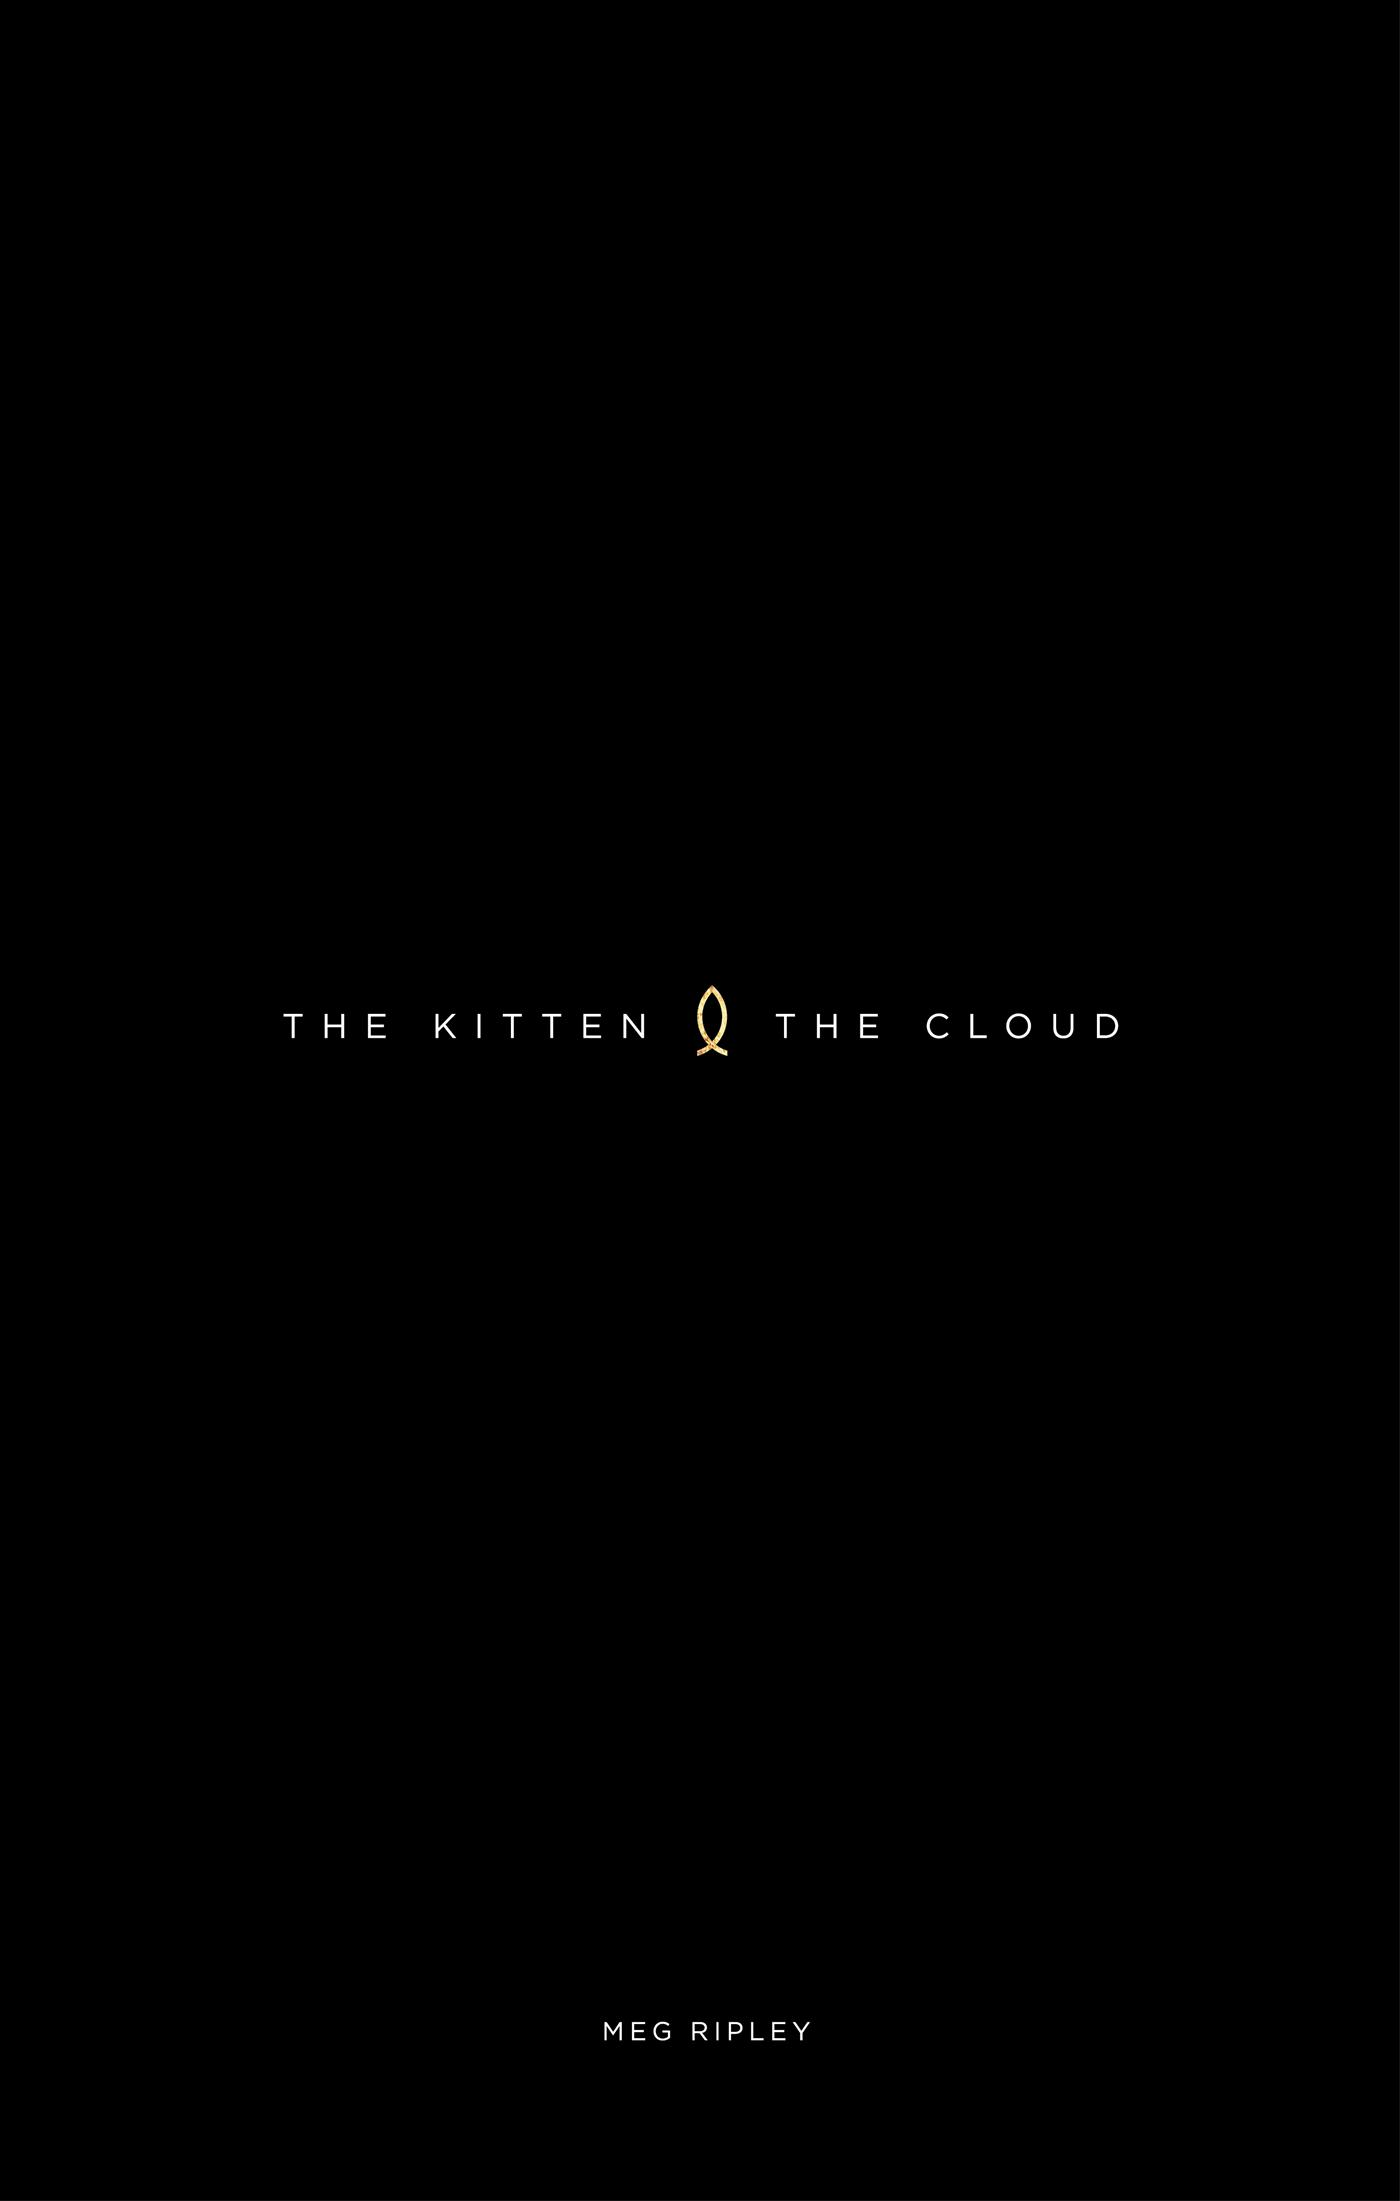 The Kitten and The Cloud